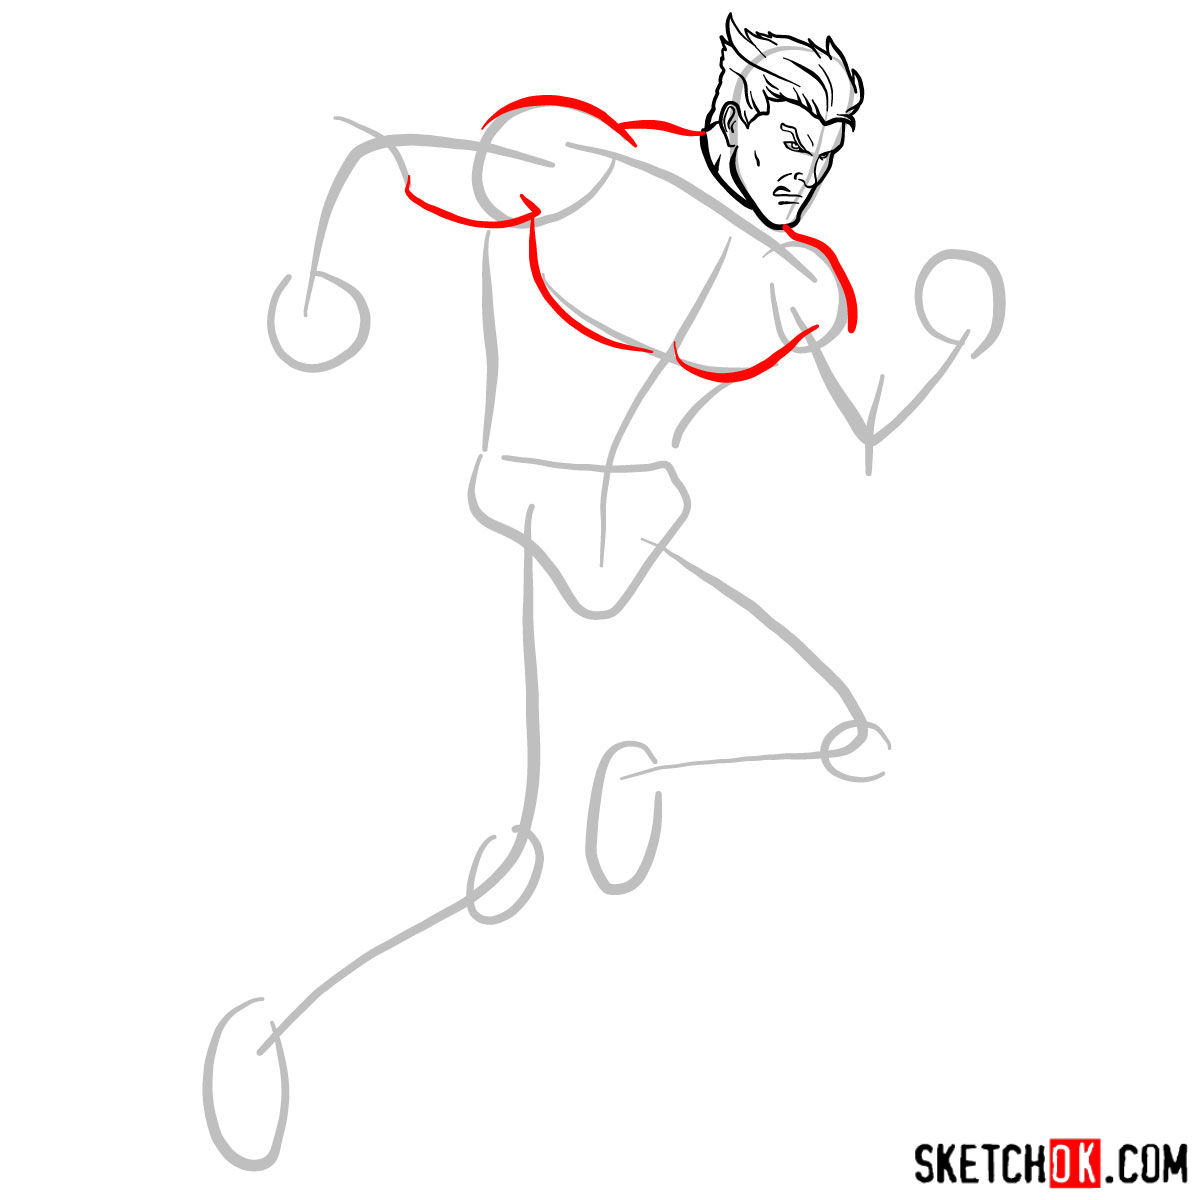 How to draw Quicksilver from Marvel Comics - step 05